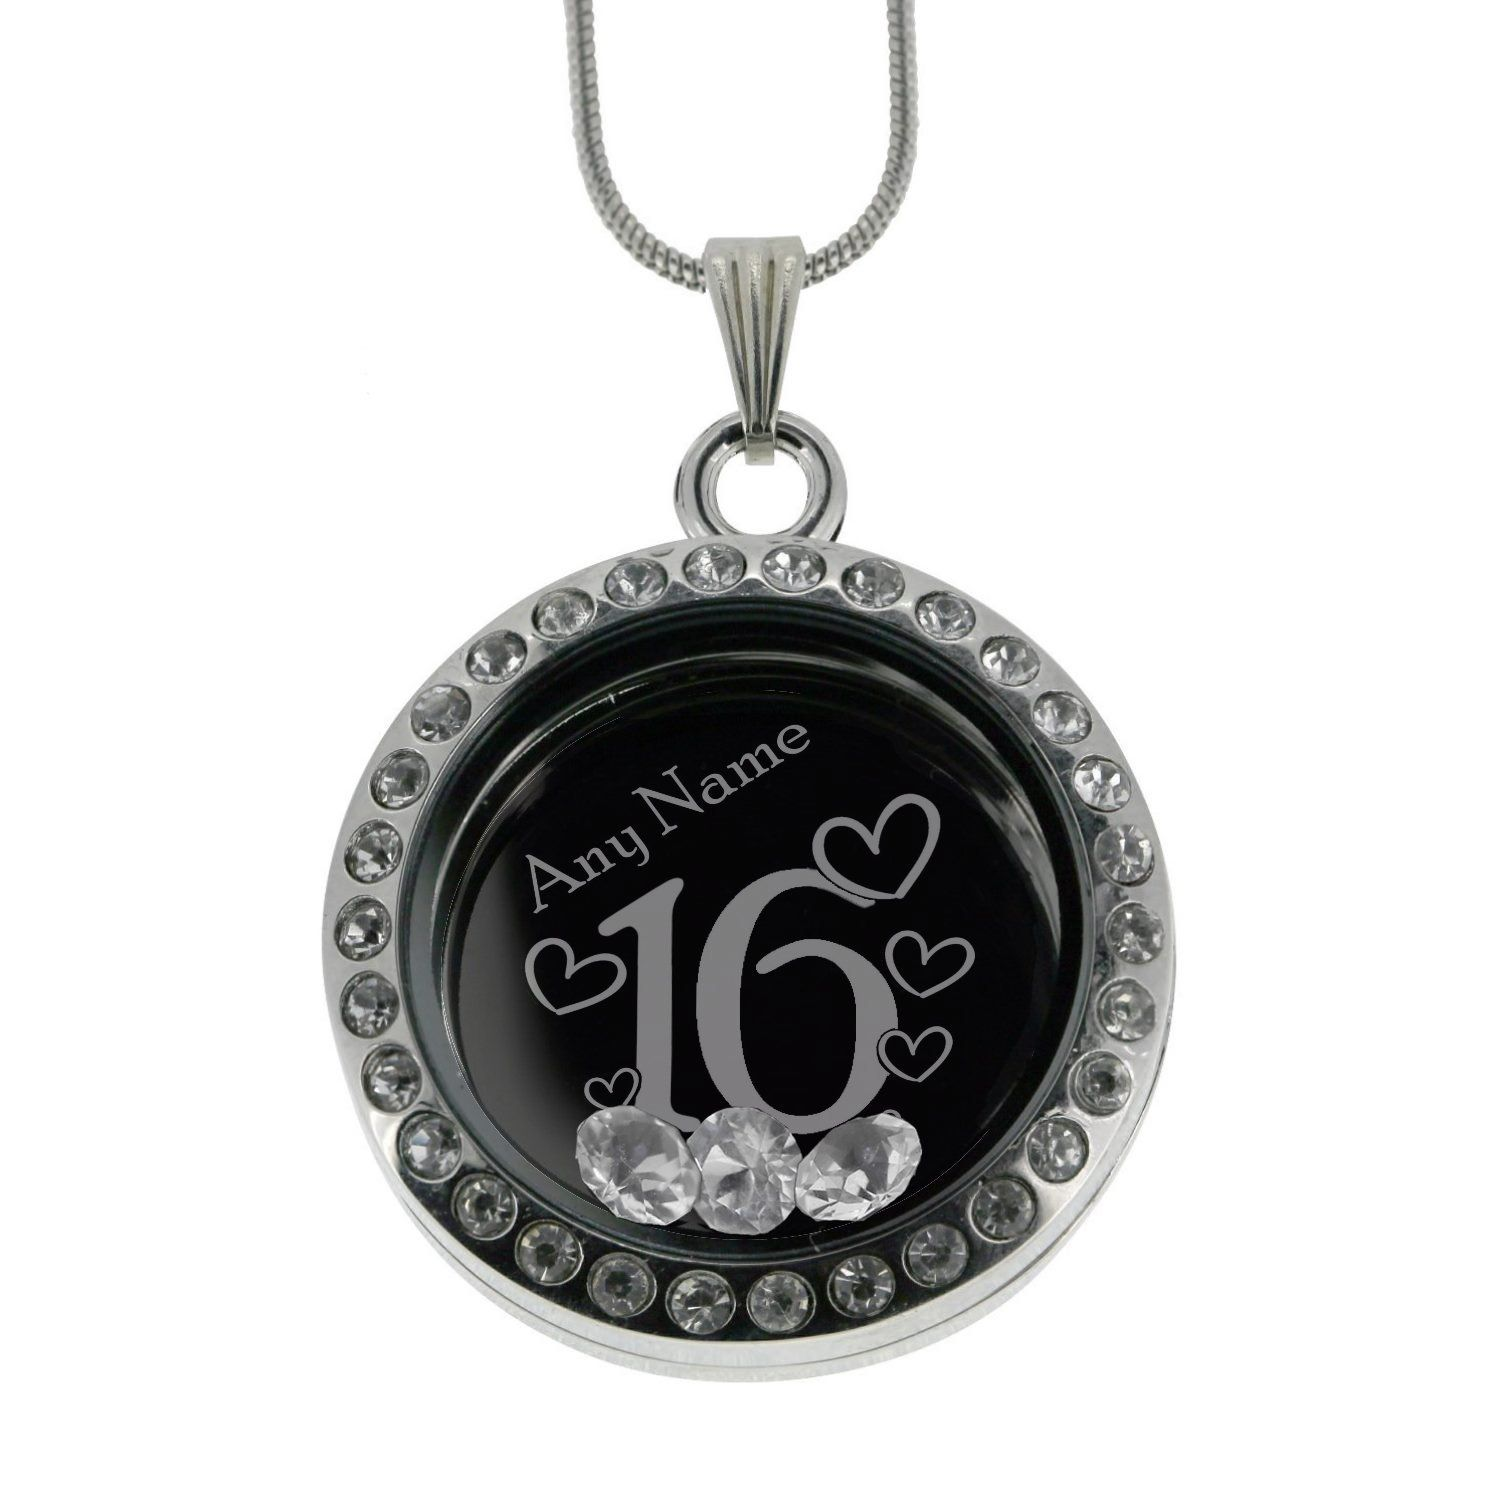 Personalised 16th Birthday Memory Locket Necklace Made With Crystals From Swarovski Gift Boxed Text Engraved wb85T